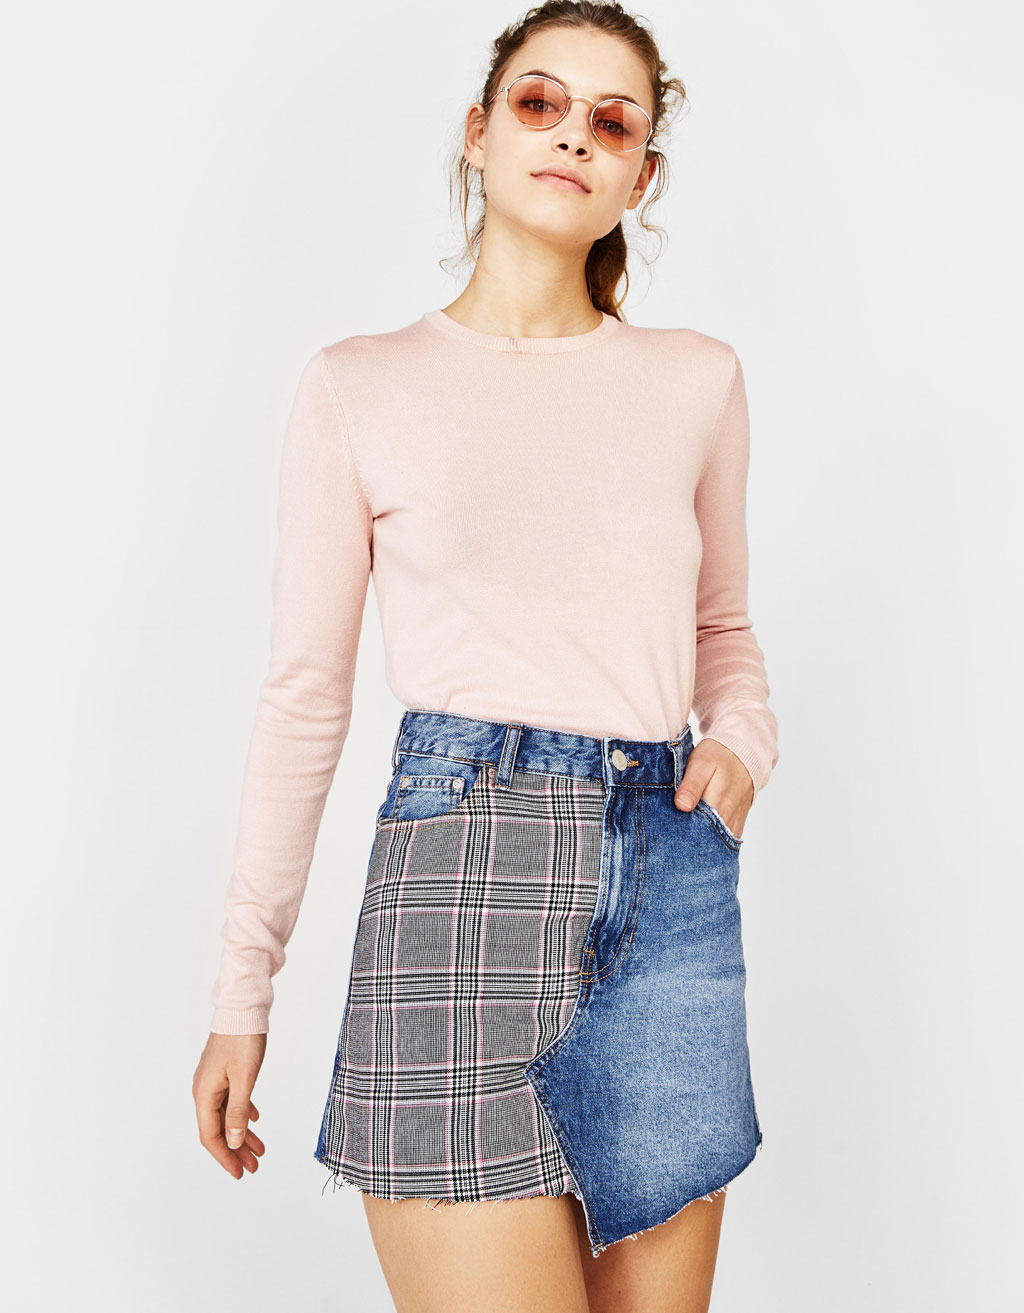 Tailored denim skirt with contrasting design